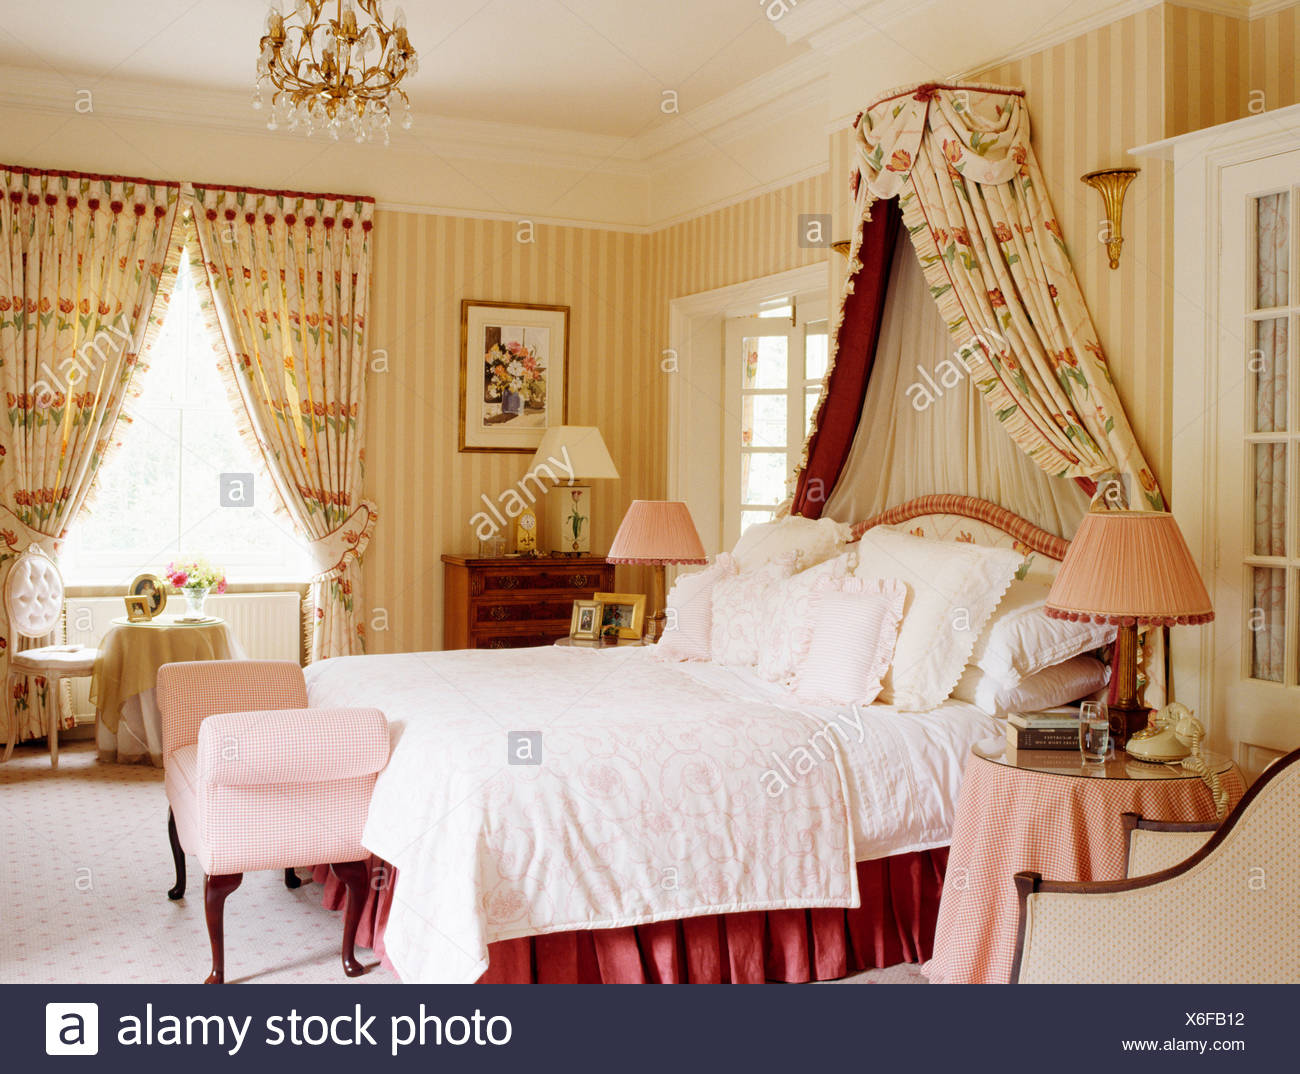 pale soft wallpaper furnishings stock bed photo white and linen coronet bedroom drape drapes pink striped with country quilt floral traditional photos in above